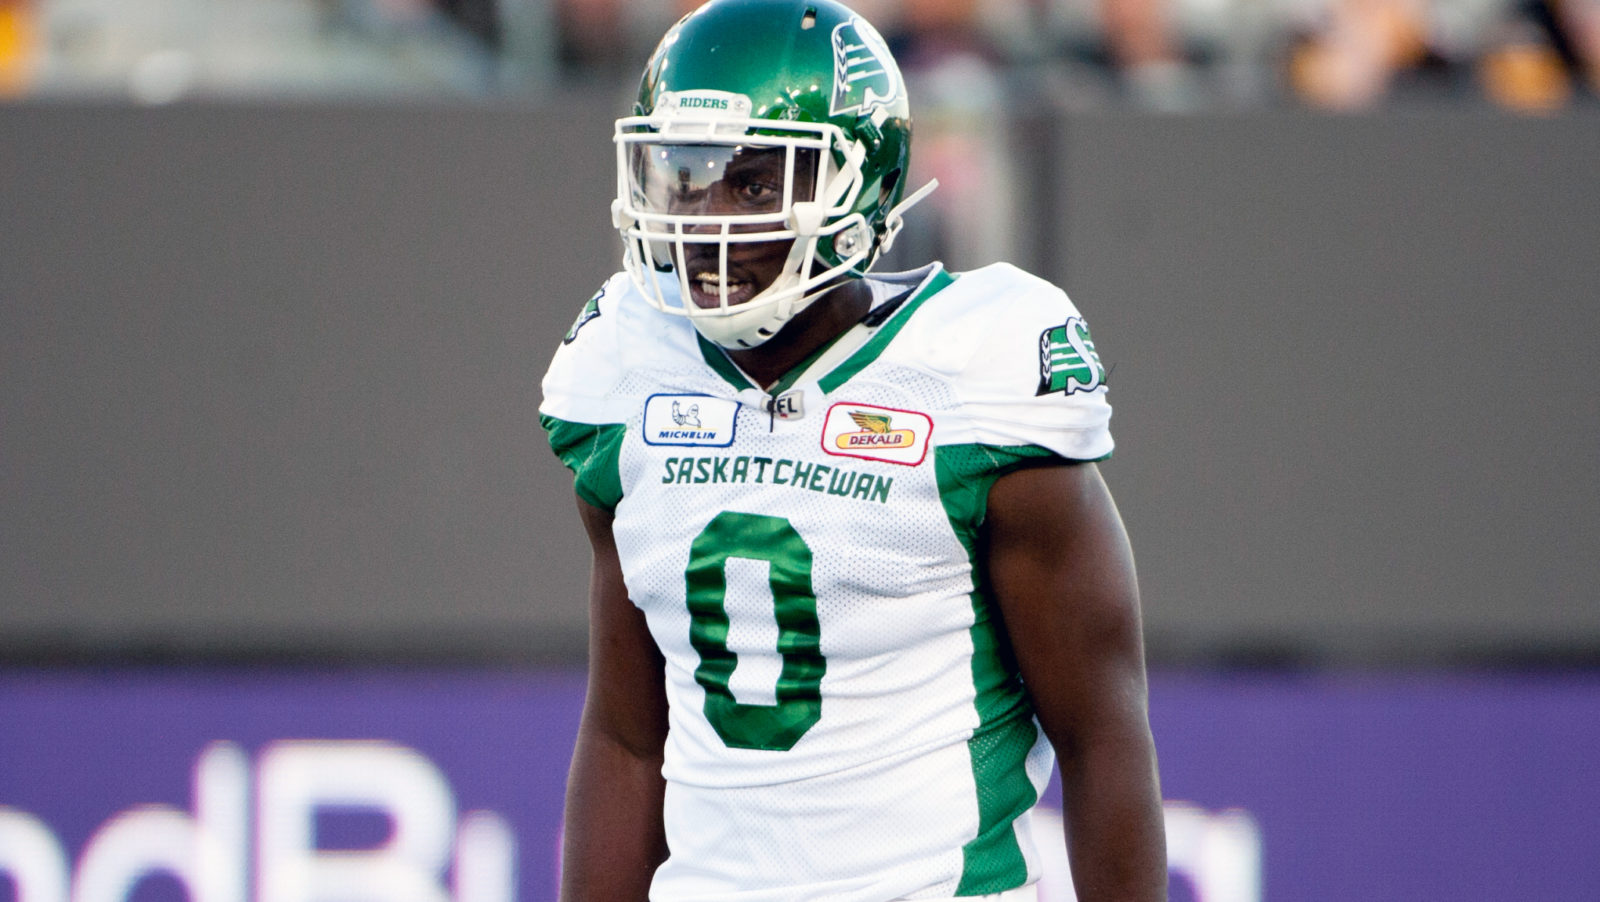 cb39ad98dc3 Under the Radar  10 sneaky good signings in FA19 - CFL.ca